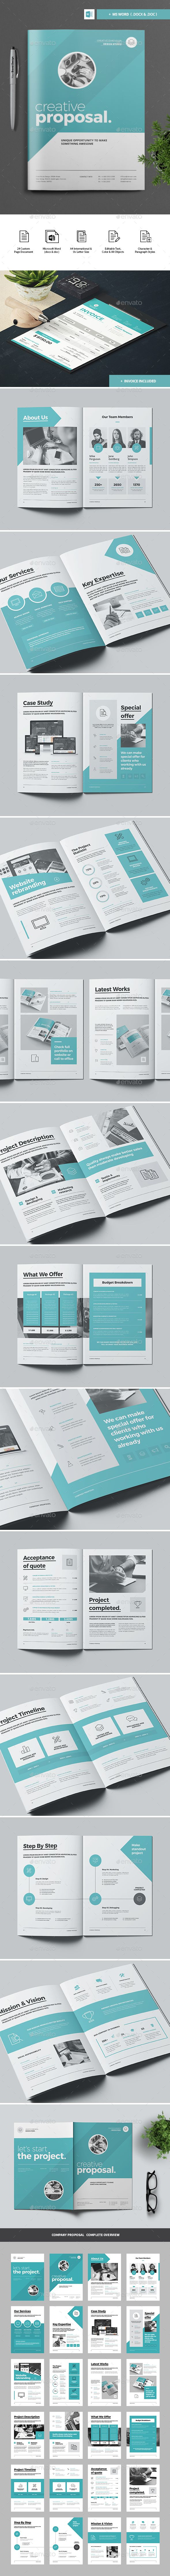 #Proposal - Proposals & #Invoices Stationery Download here: https://graphicriver.net/item/proposal/19642443?ref=alena994